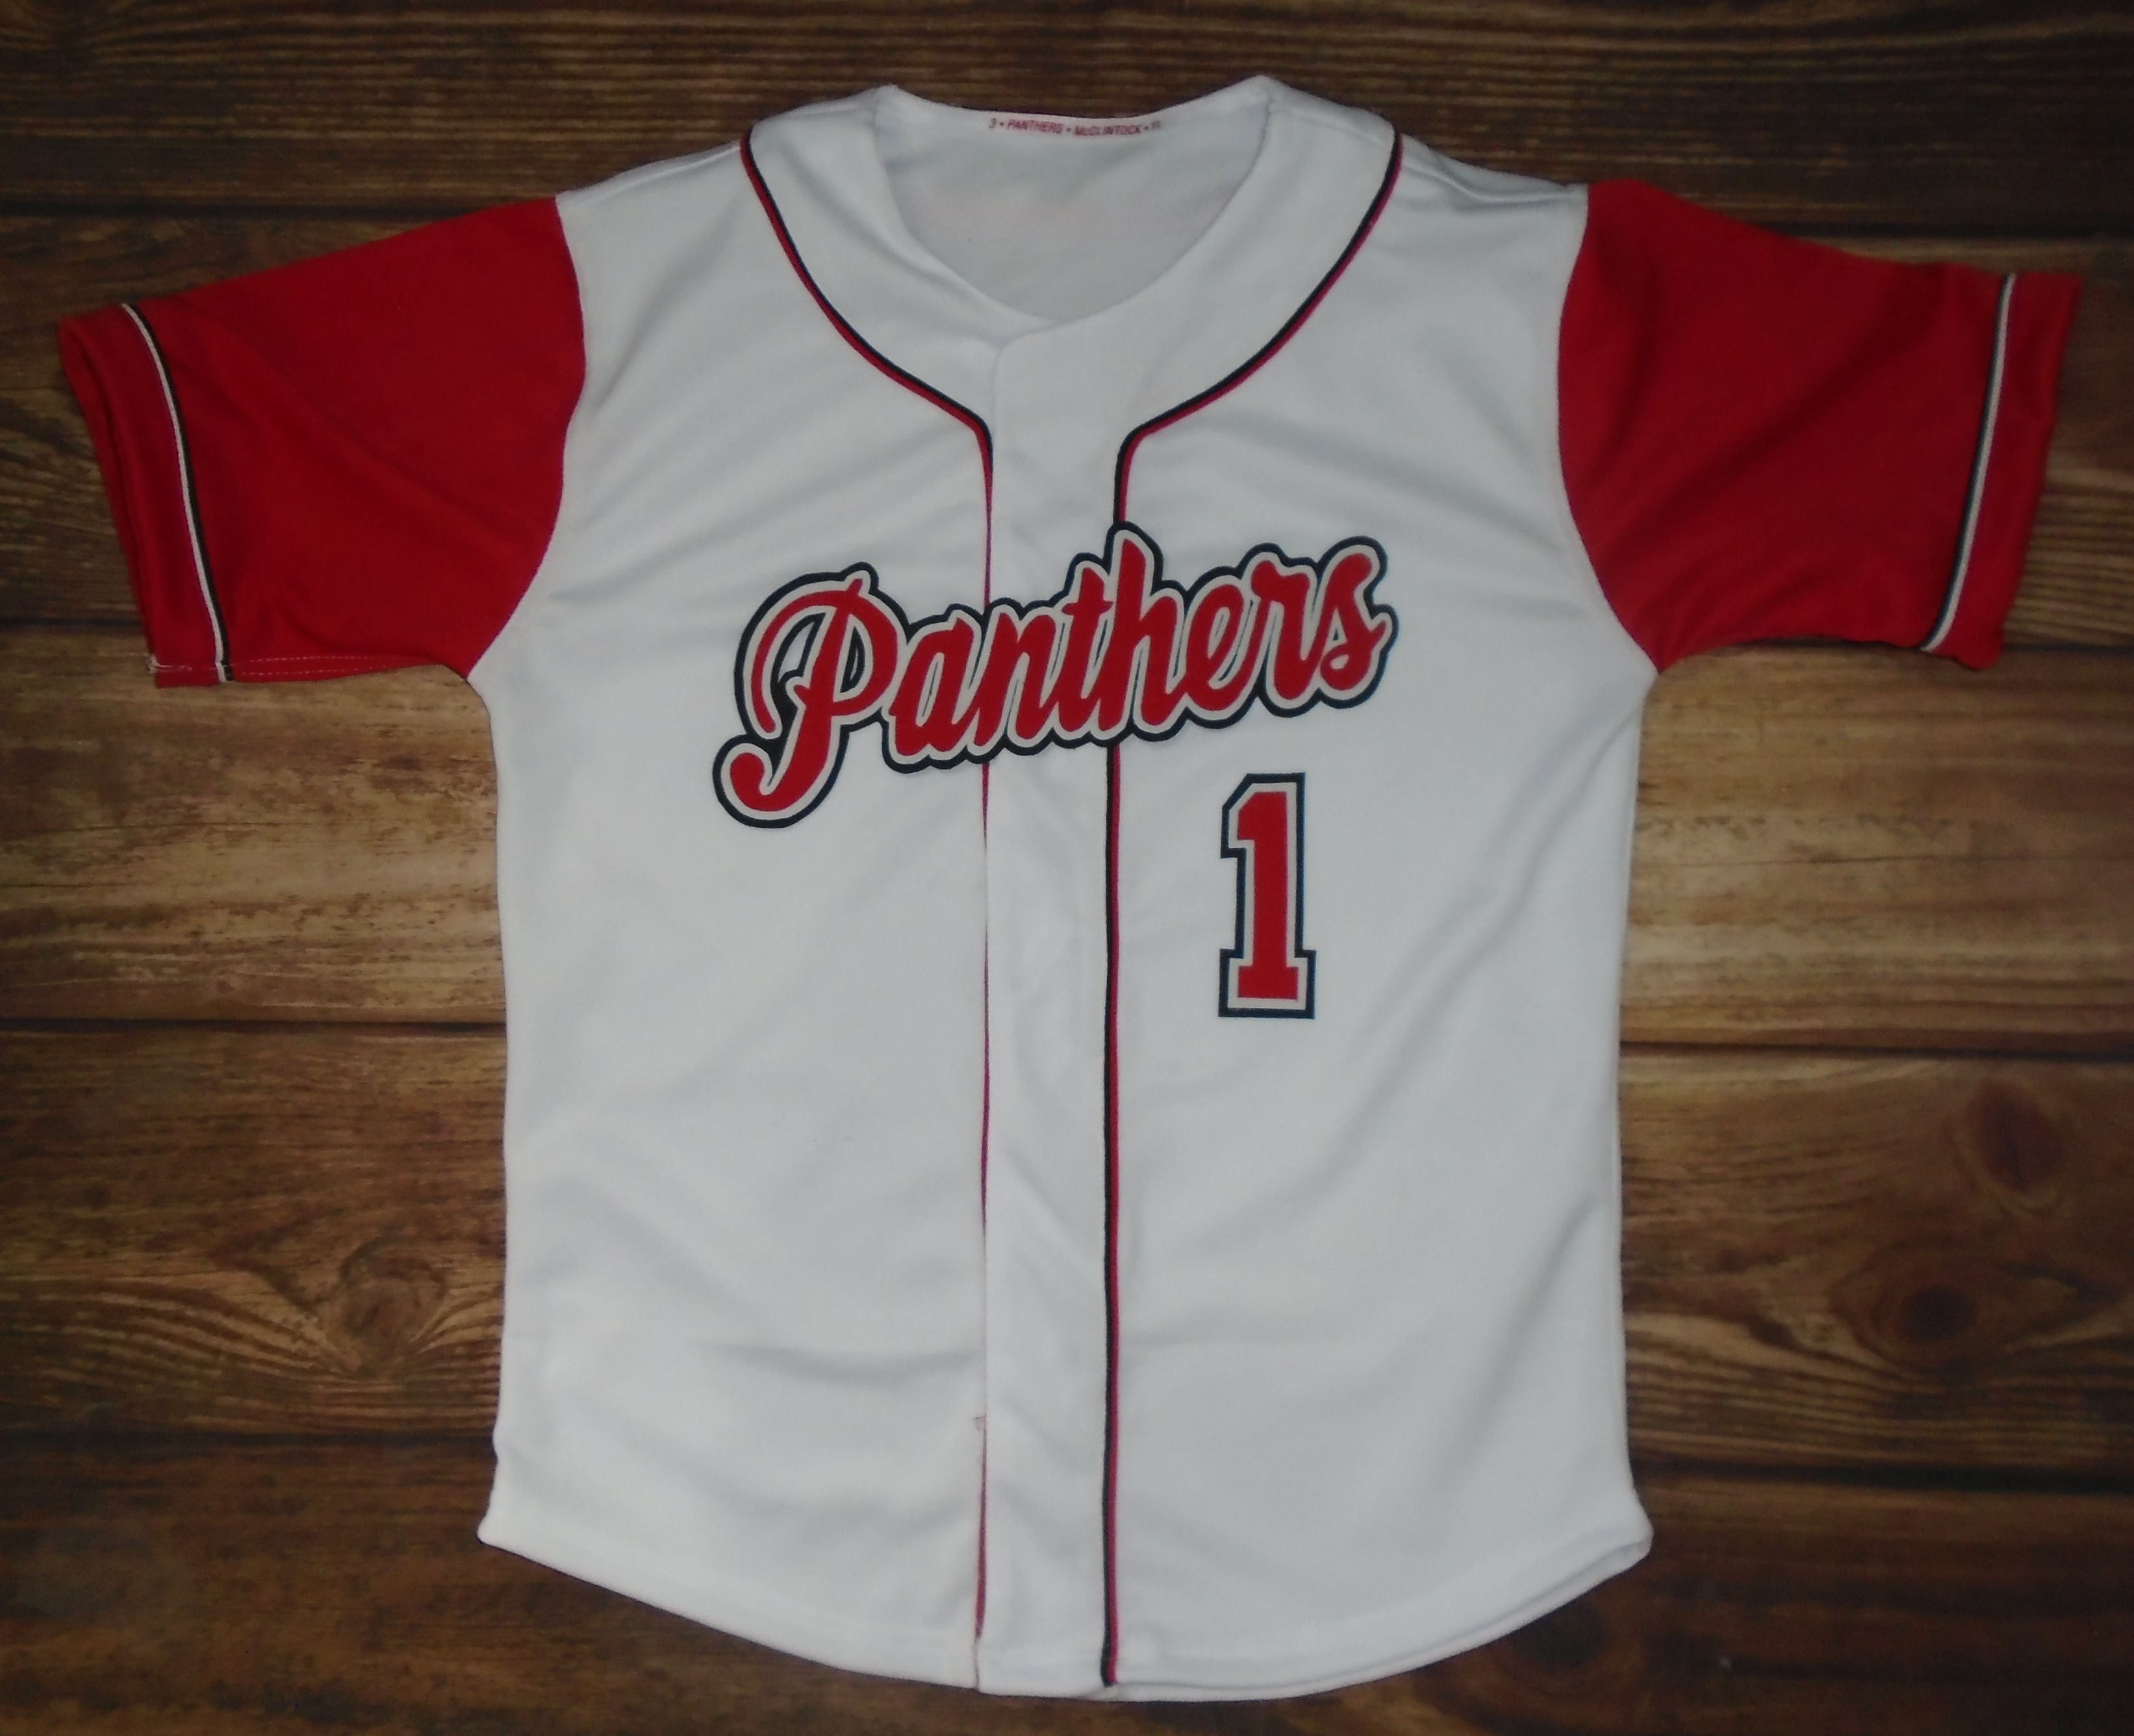 Panthers Baseball Custom Jersey Created At Darrows Sporting Edge In